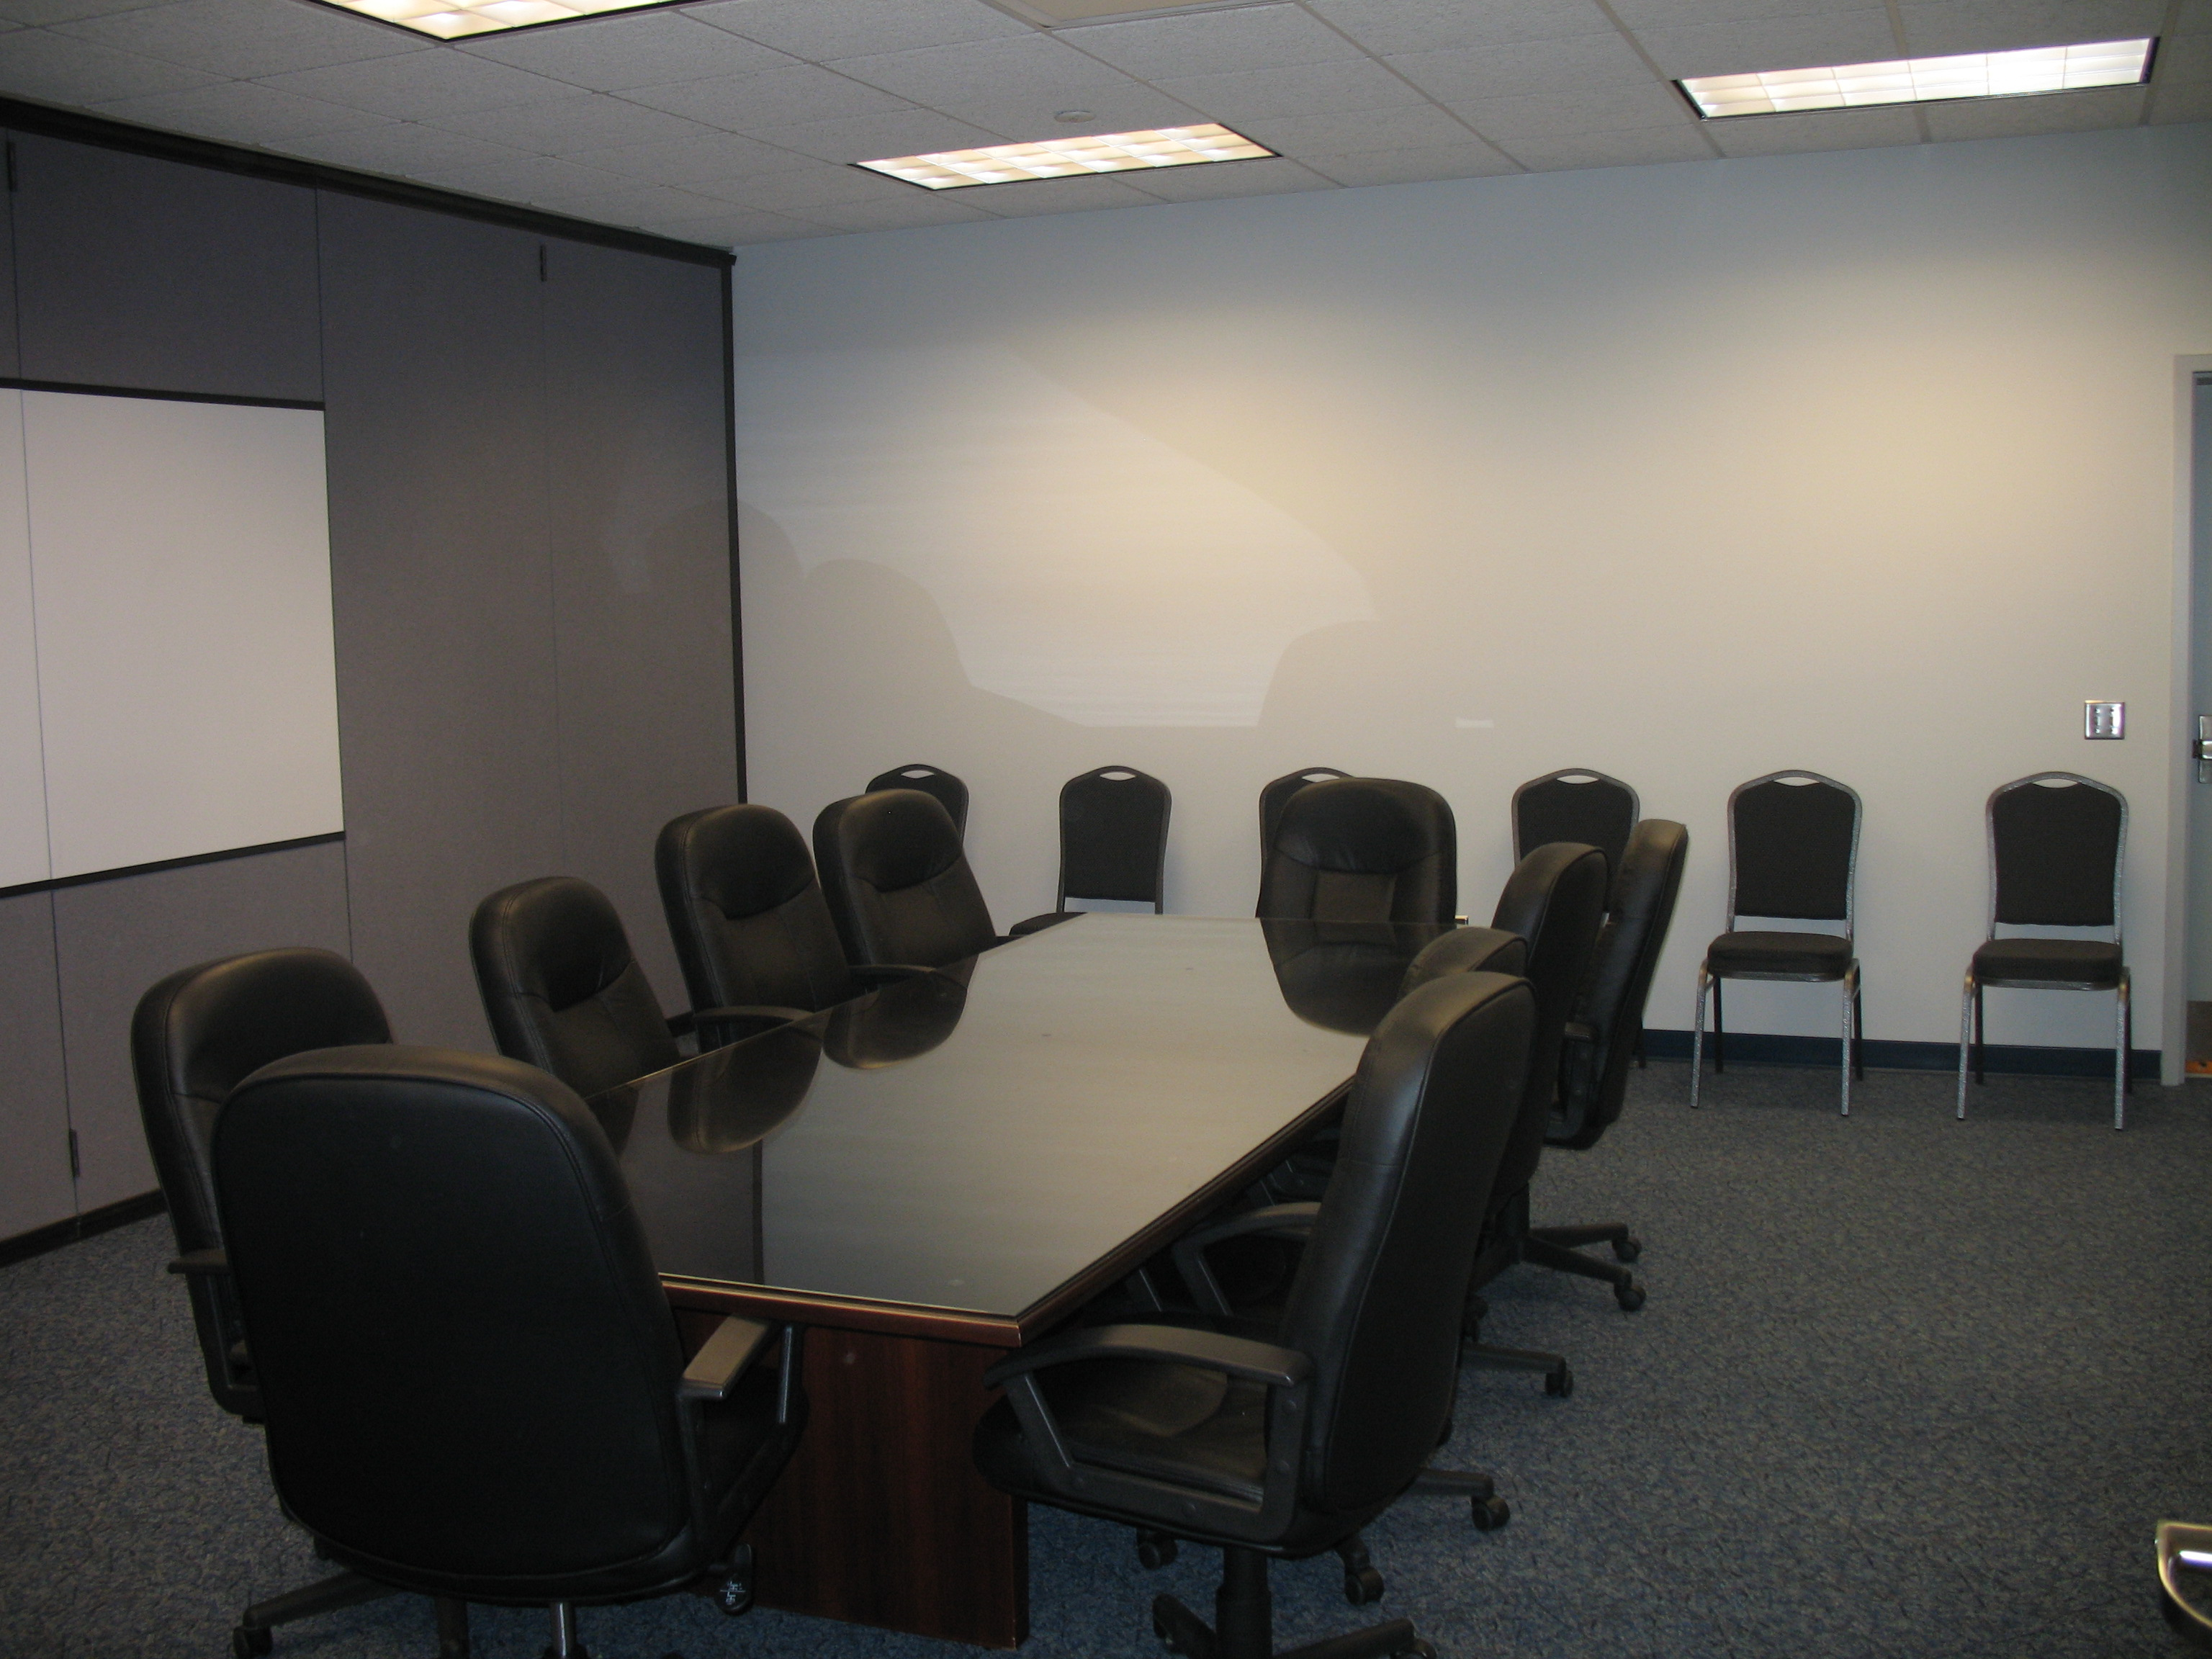 council-bluffs-airport-terminal-conferance-room2